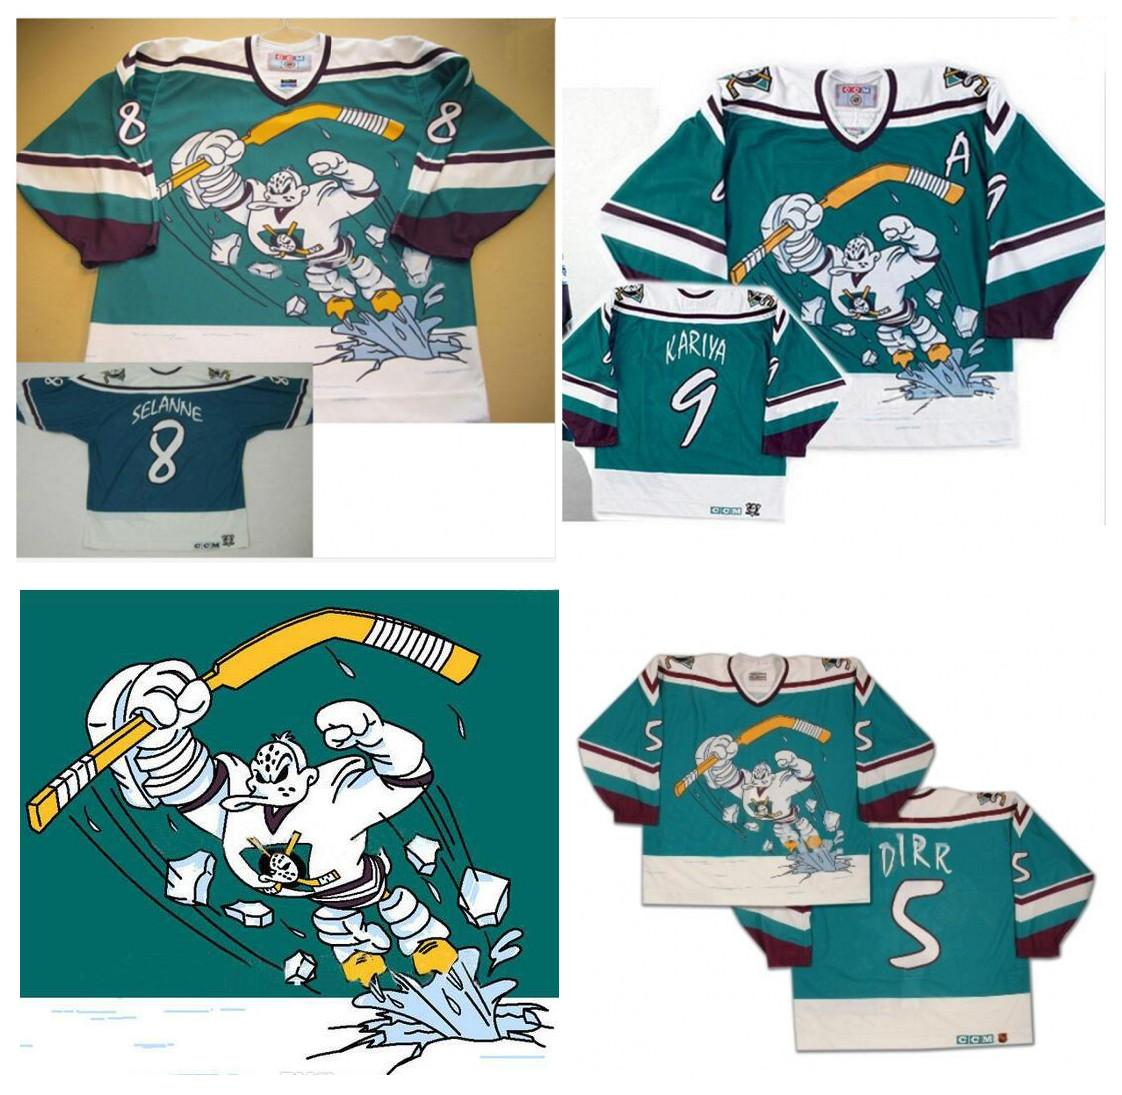 5c53c00e2 2019 Men Women Youth CCM Retro Anaheim Mighty Ducks Vintage Wild Wing Jersey  5 DIRR 8 Teemu Selanne 9 Paul Kariya 11 Valeri Karpov Hockey Jerseys From  ...